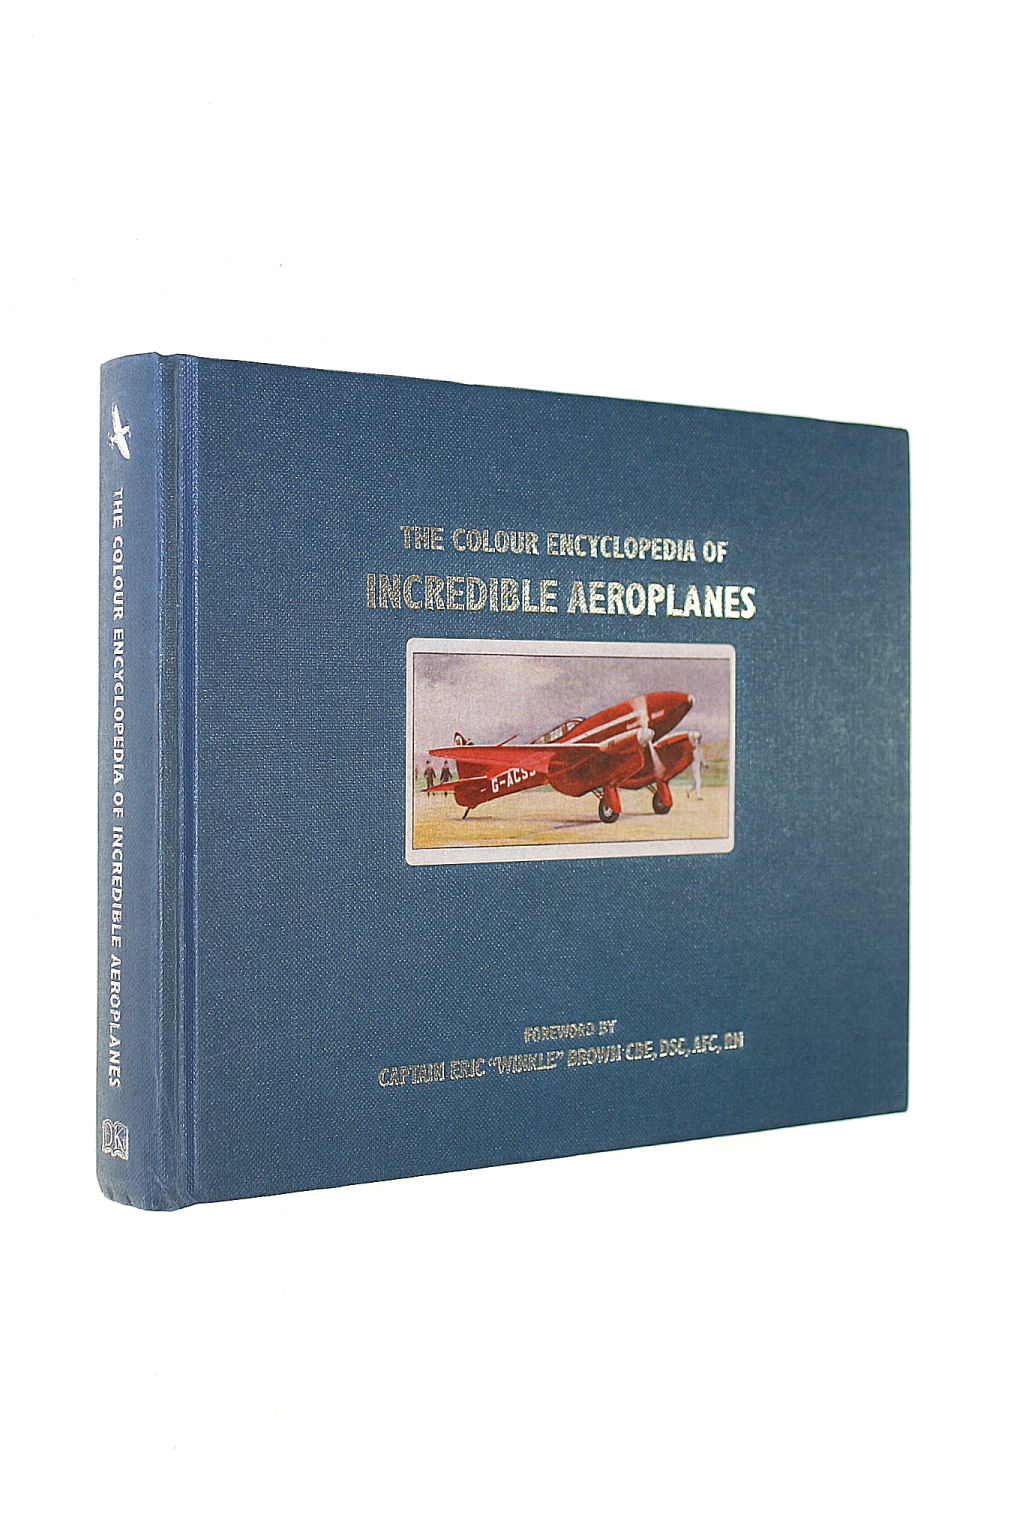 Image for The Colour Encyclopedia Incredible Aeroplanes